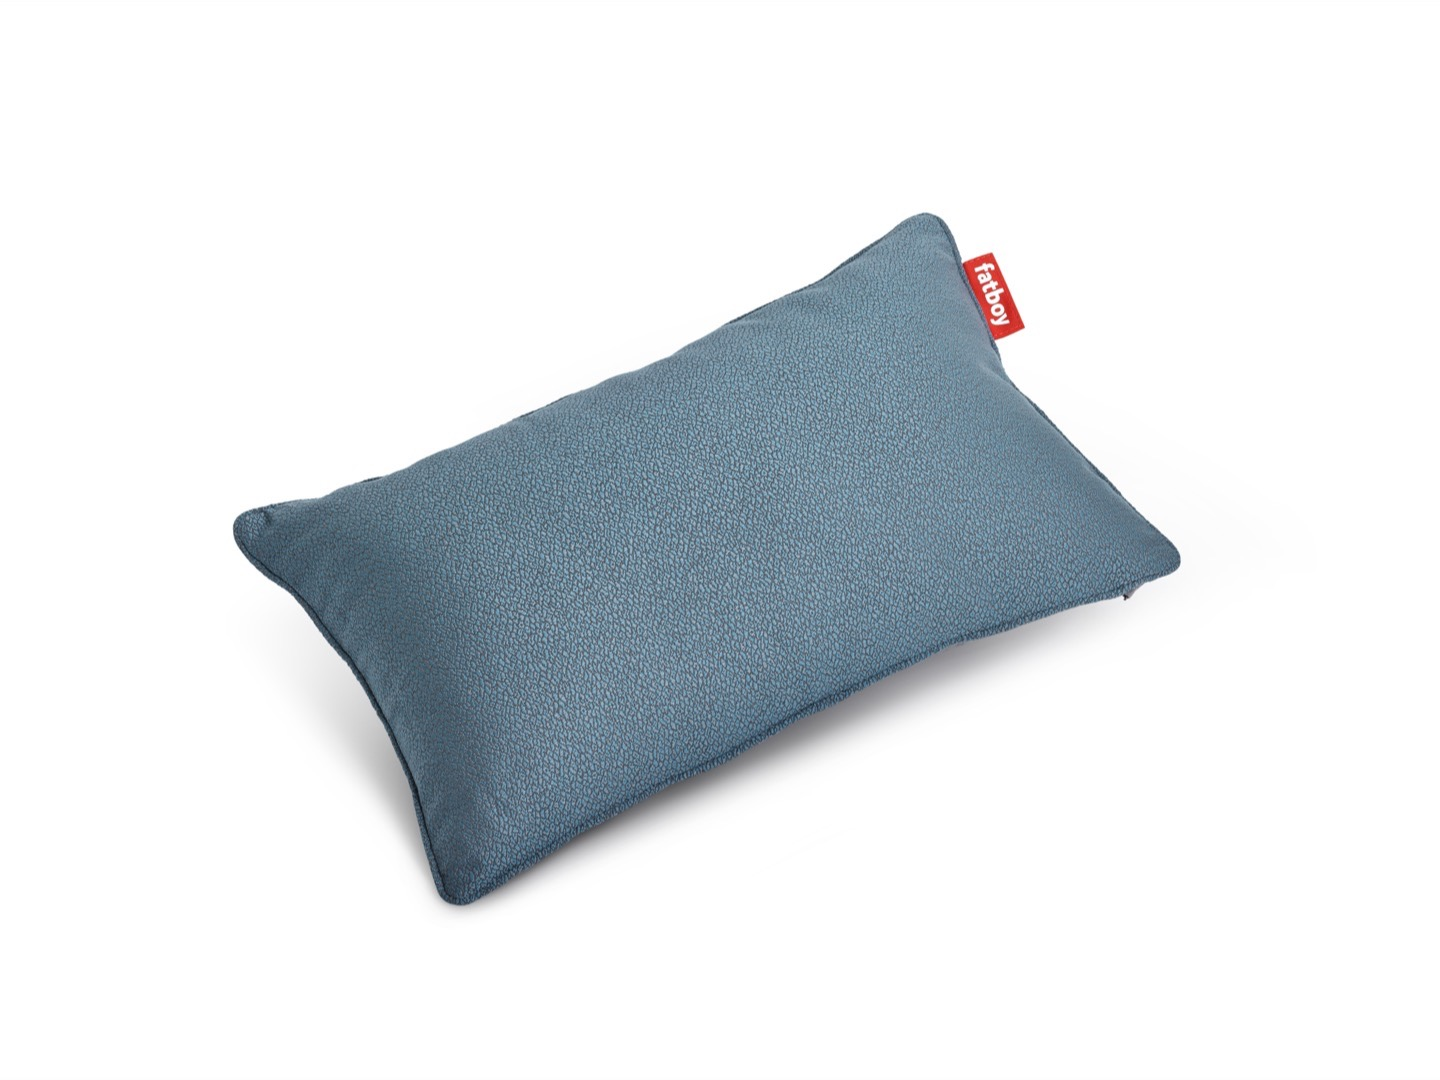 King Pillow Duotone - poducha